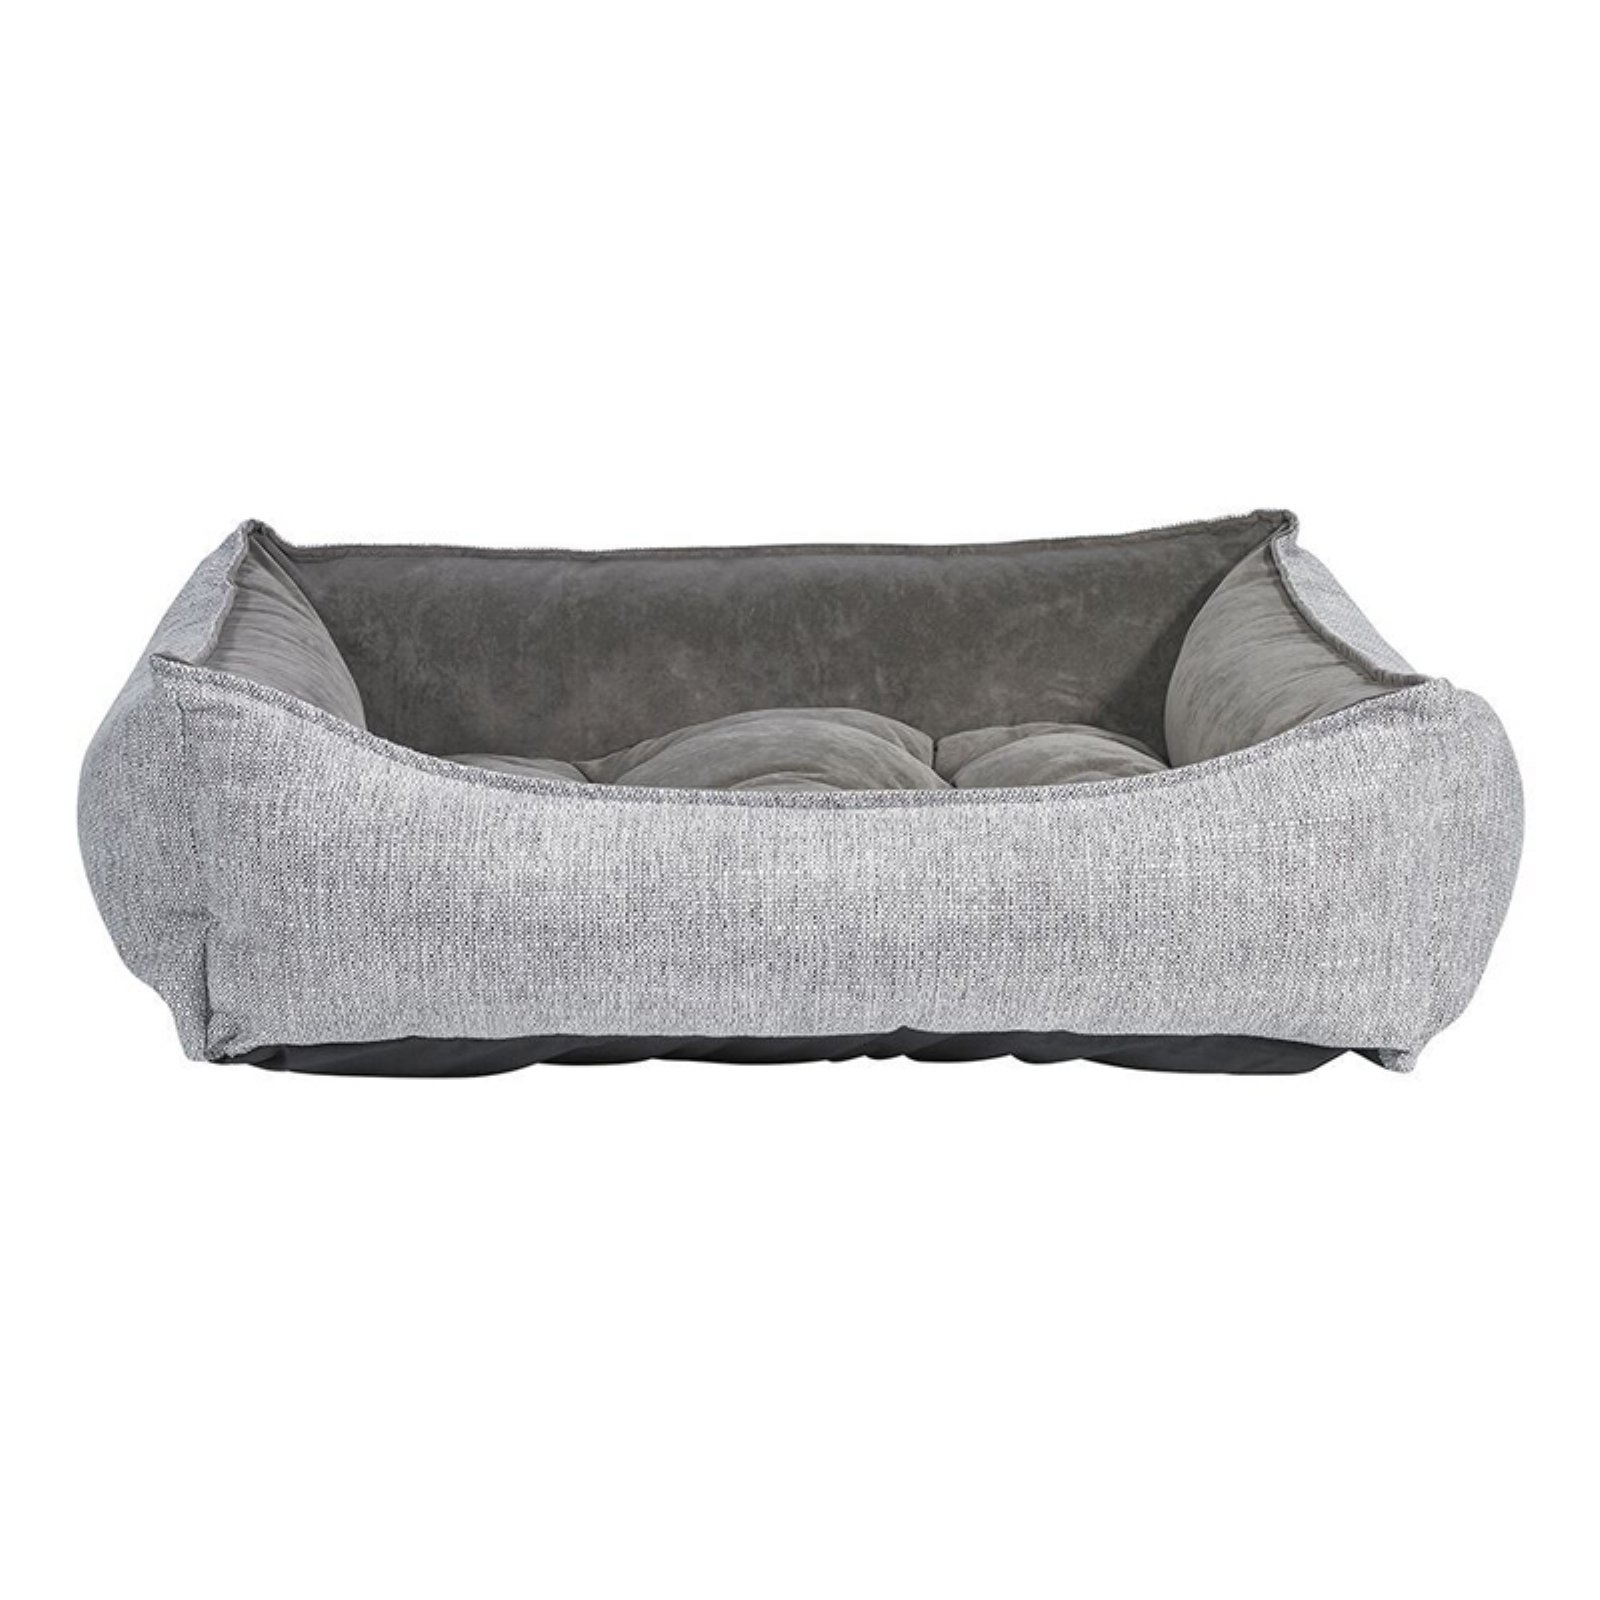 Bowser's Scoop Pet Bed, Allumina/Dusk, Large (39L x 30W x 11H in)